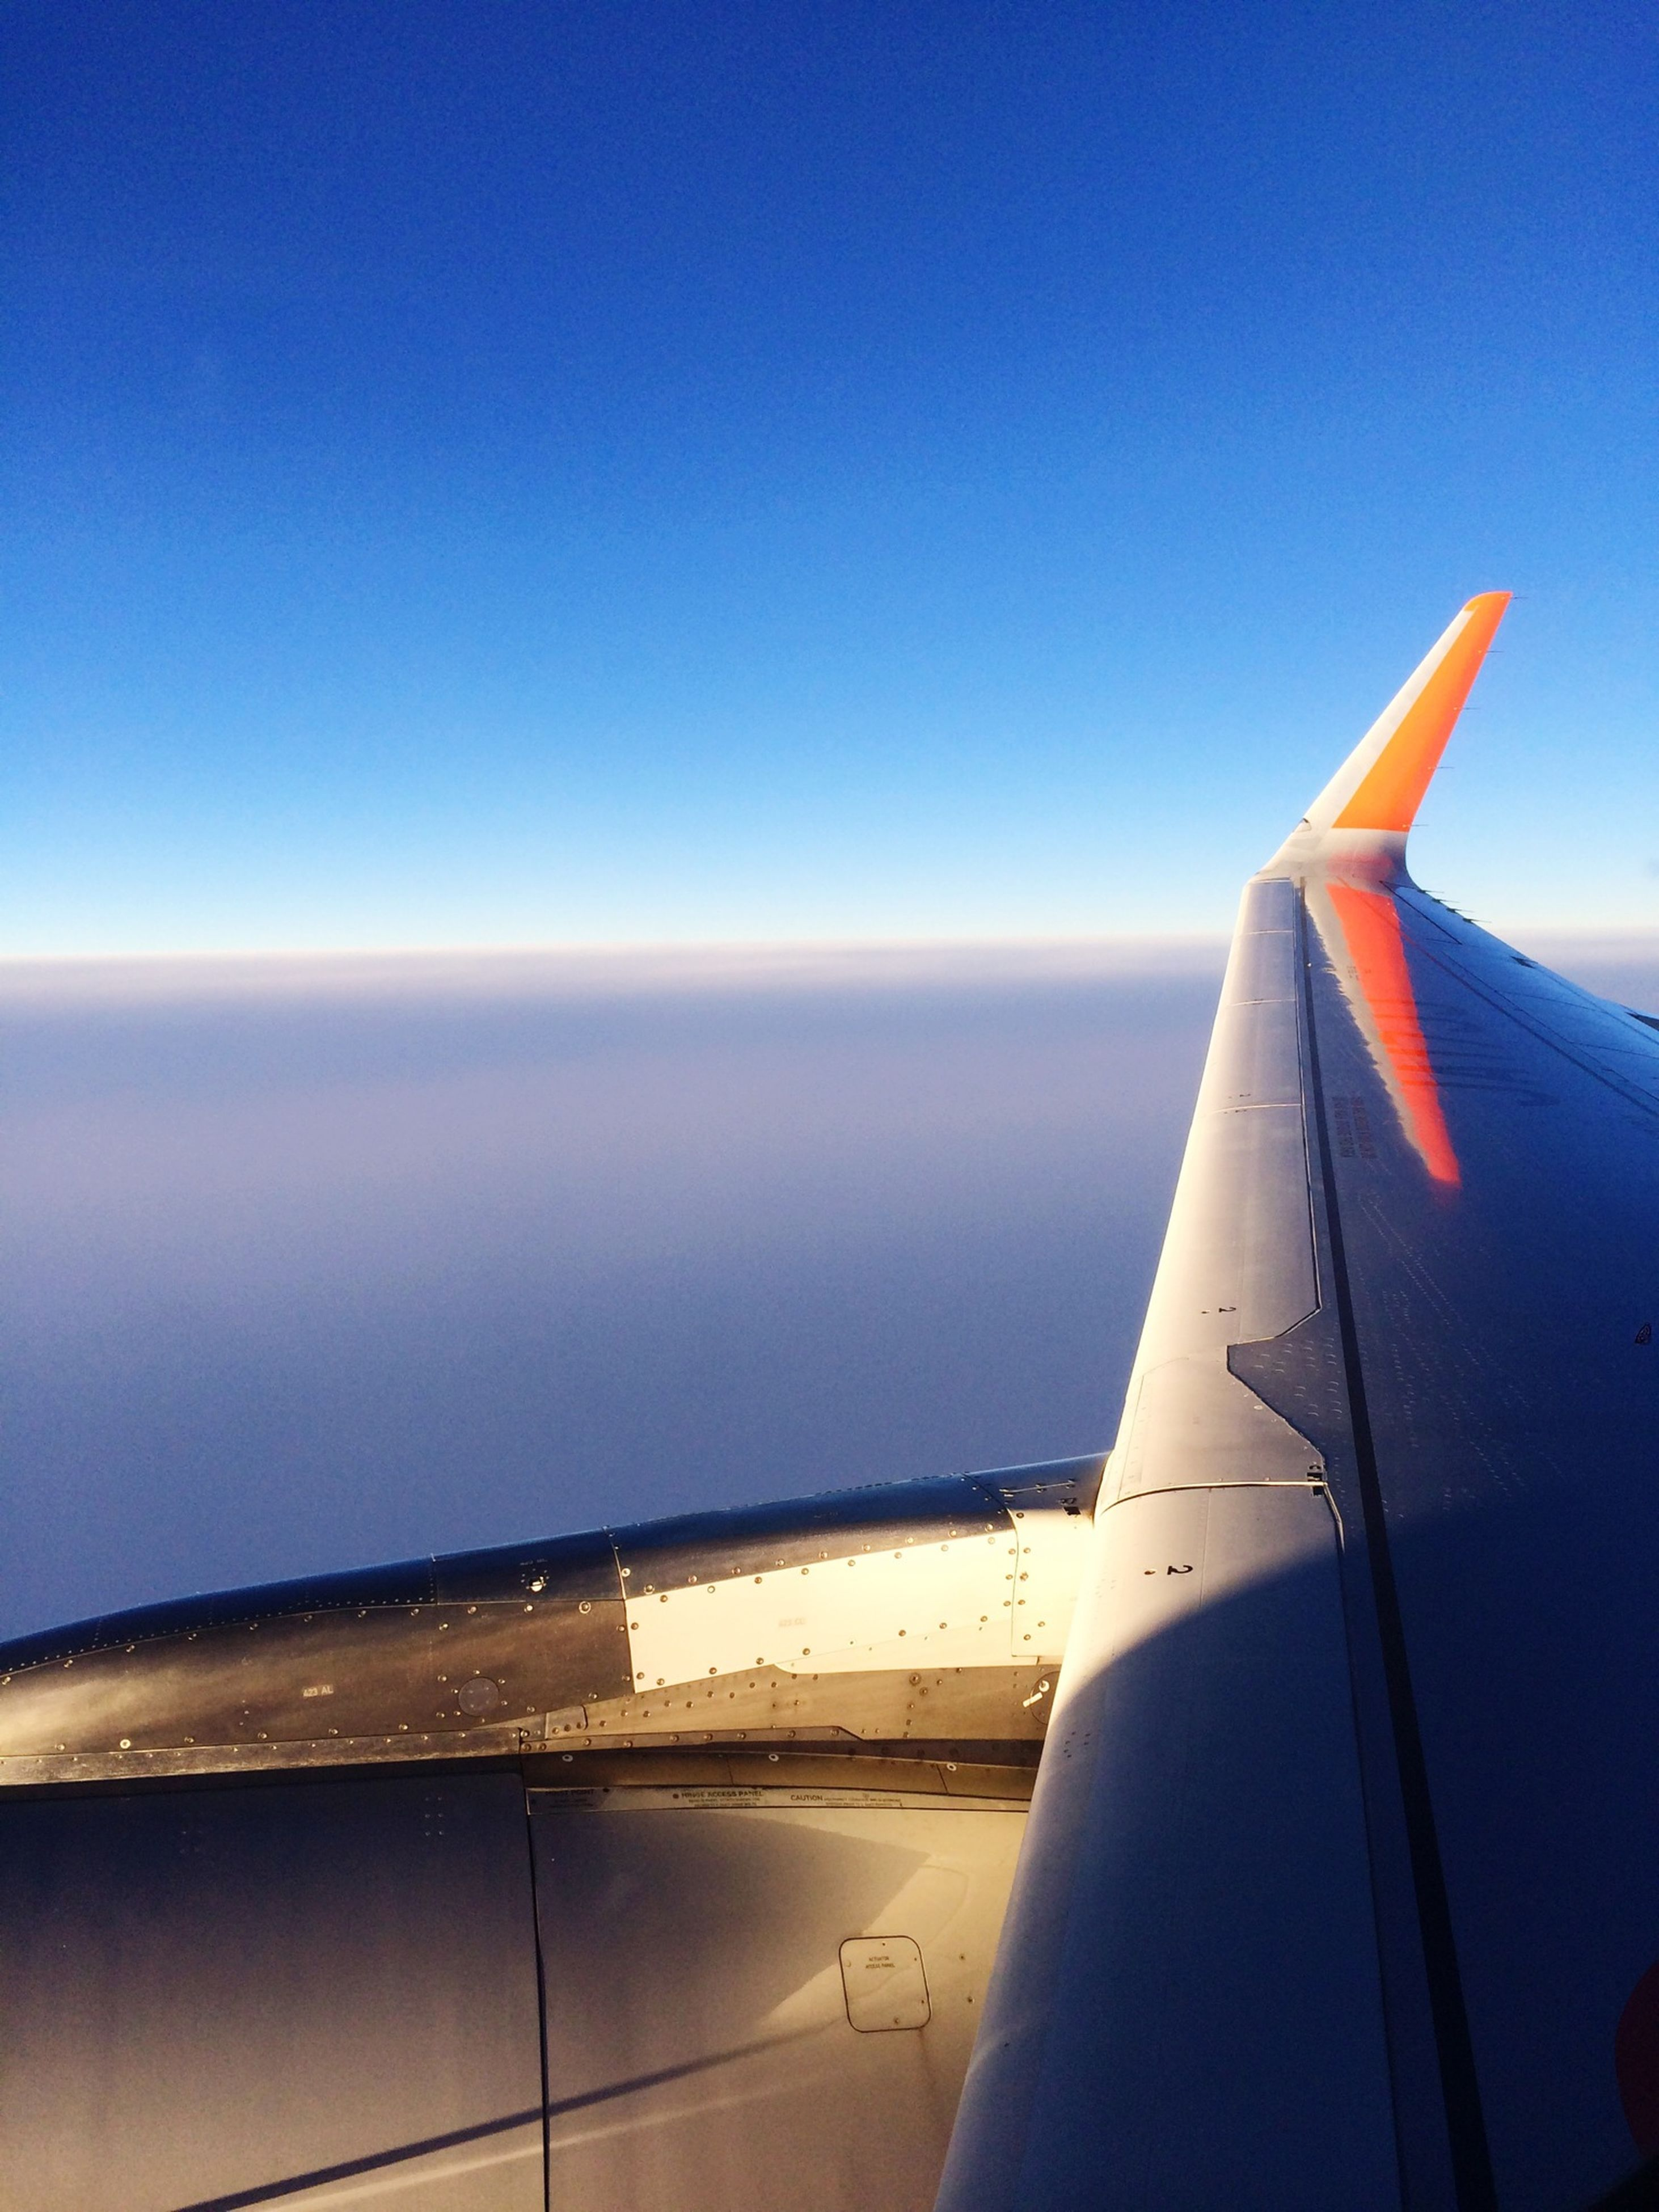 airplane, aircraft wing, sea, air vehicle, transportation, part of, blue, cropped, horizon over water, flying, mode of transport, sky, scenics, travel, journey, beauty in nature, clear sky, aerial view, nature, copy space